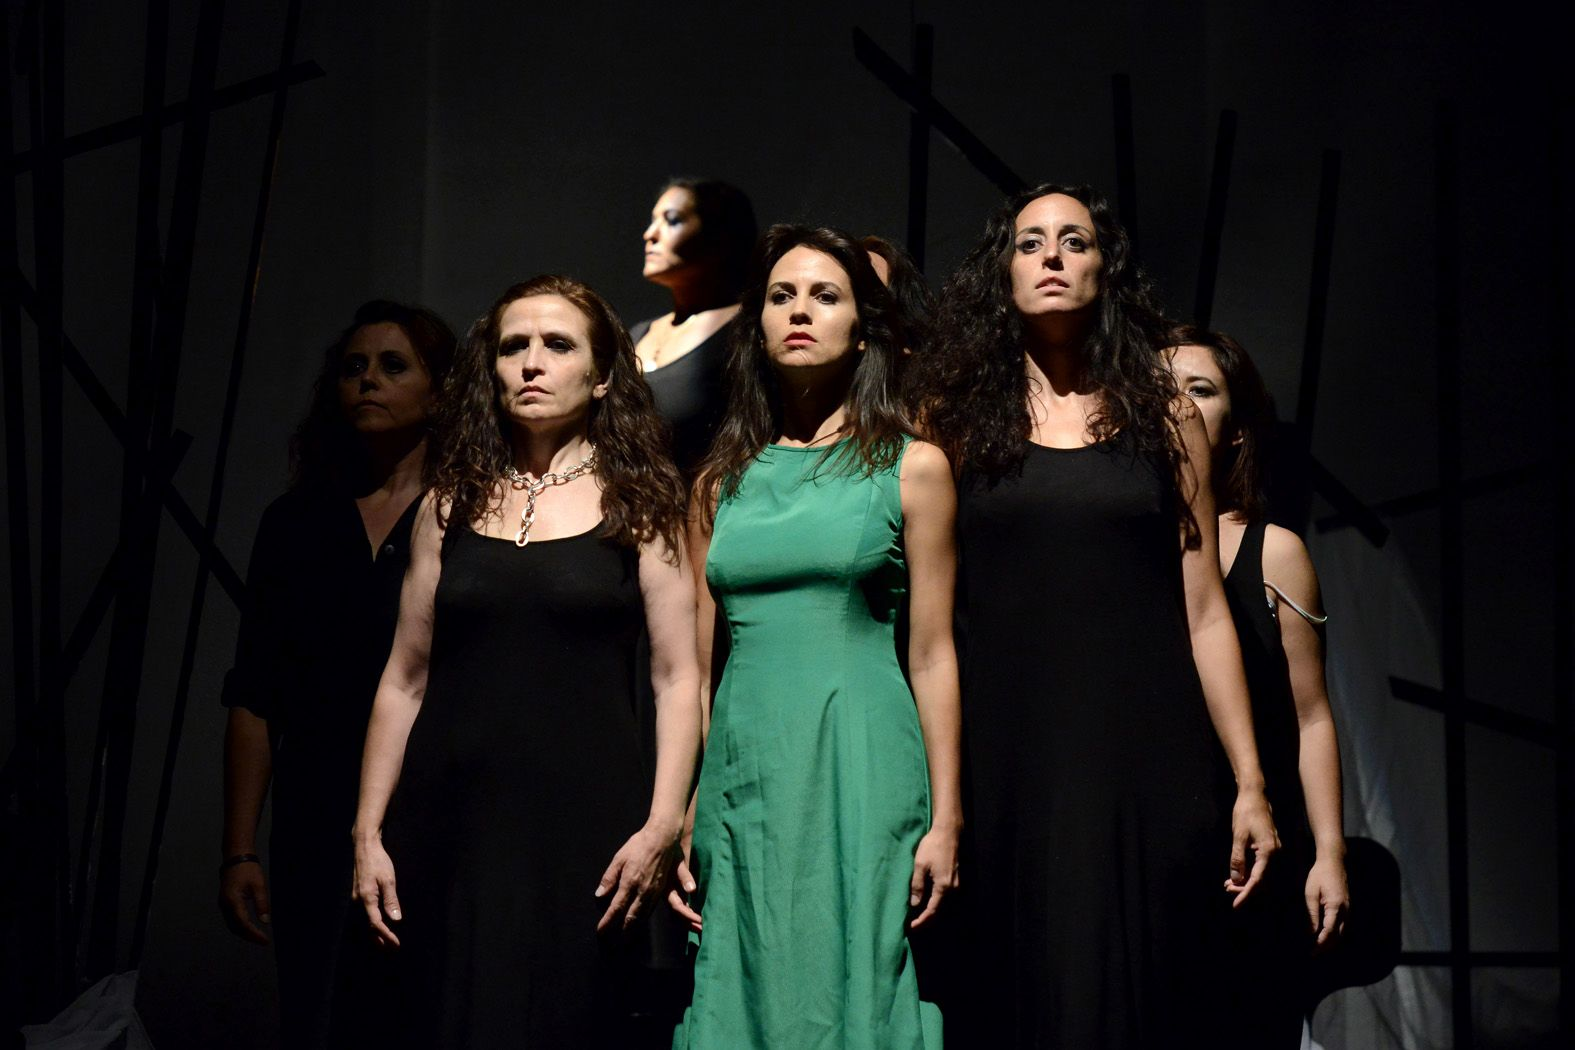 la casa de bernarda alba essay questions The house of bernarda alba (spanish: la casa de bernarda alba) is a play by  the  alba (aged 60) wields total control over her five daughters angustias  http ://wwwgradesavercom/the-house-of-bernarda-alba/study-guide/essay-questions.